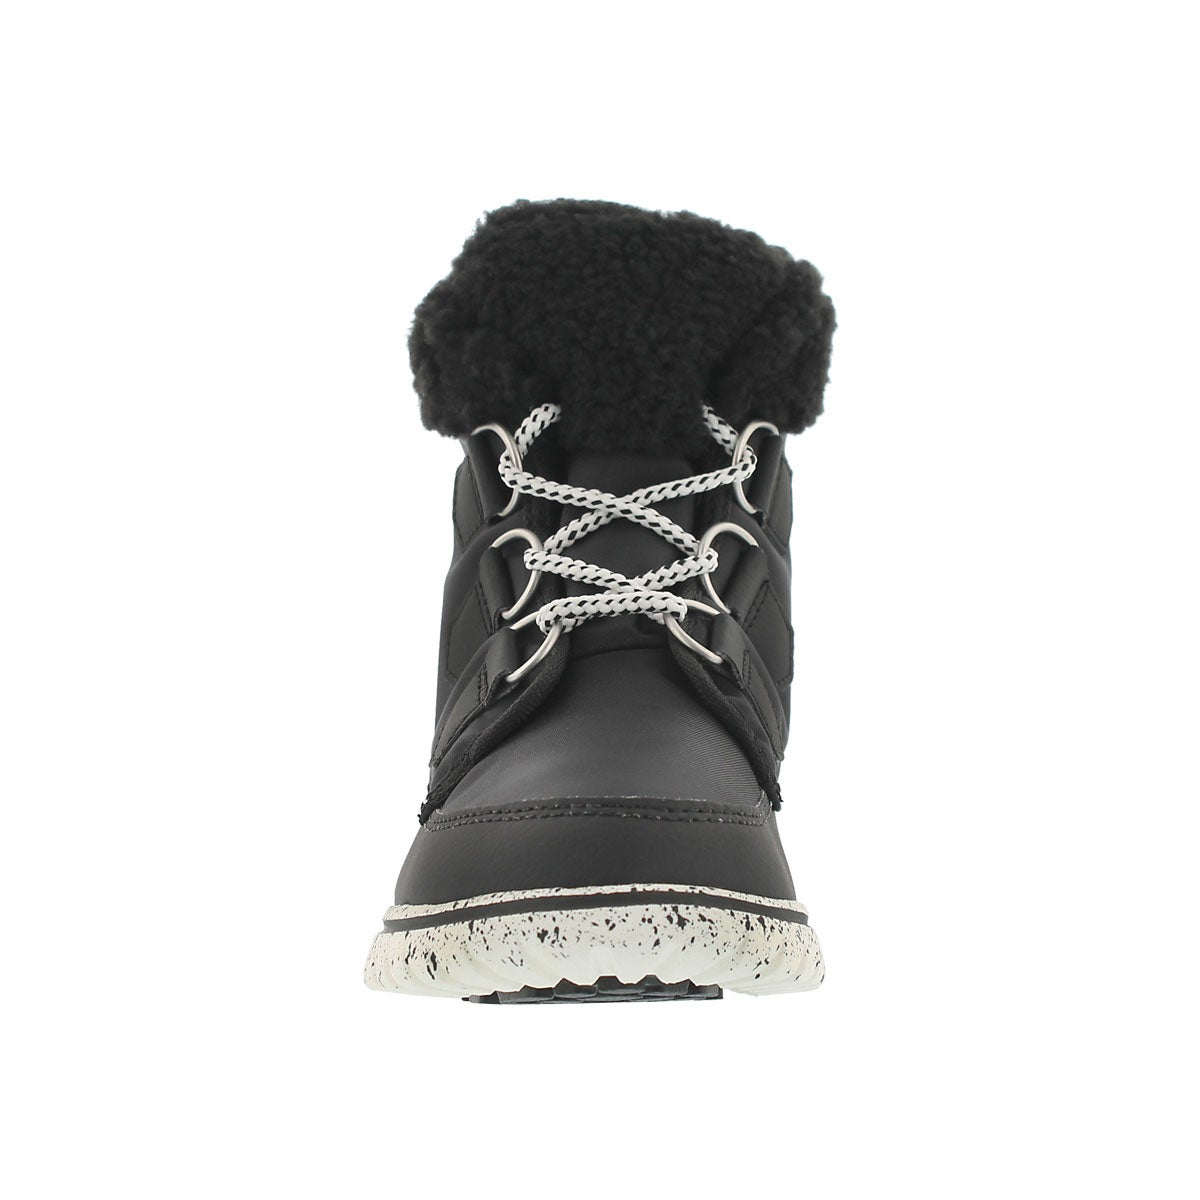 Lds Cozy Carnival black low snow boot